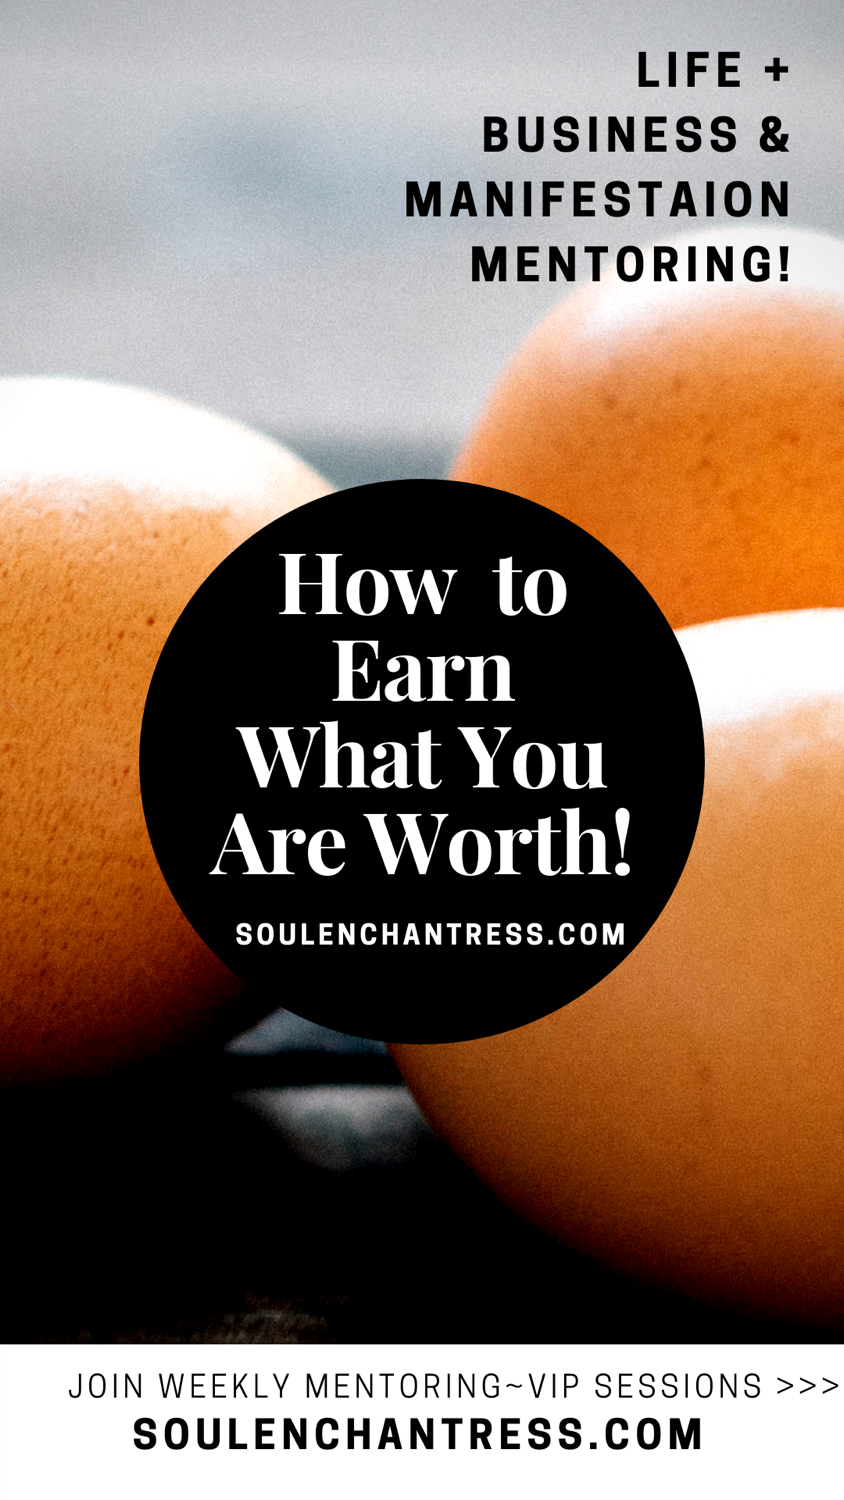 how to raise your prices, how to get a promotion, how to earn what you are worth, soul enchantress